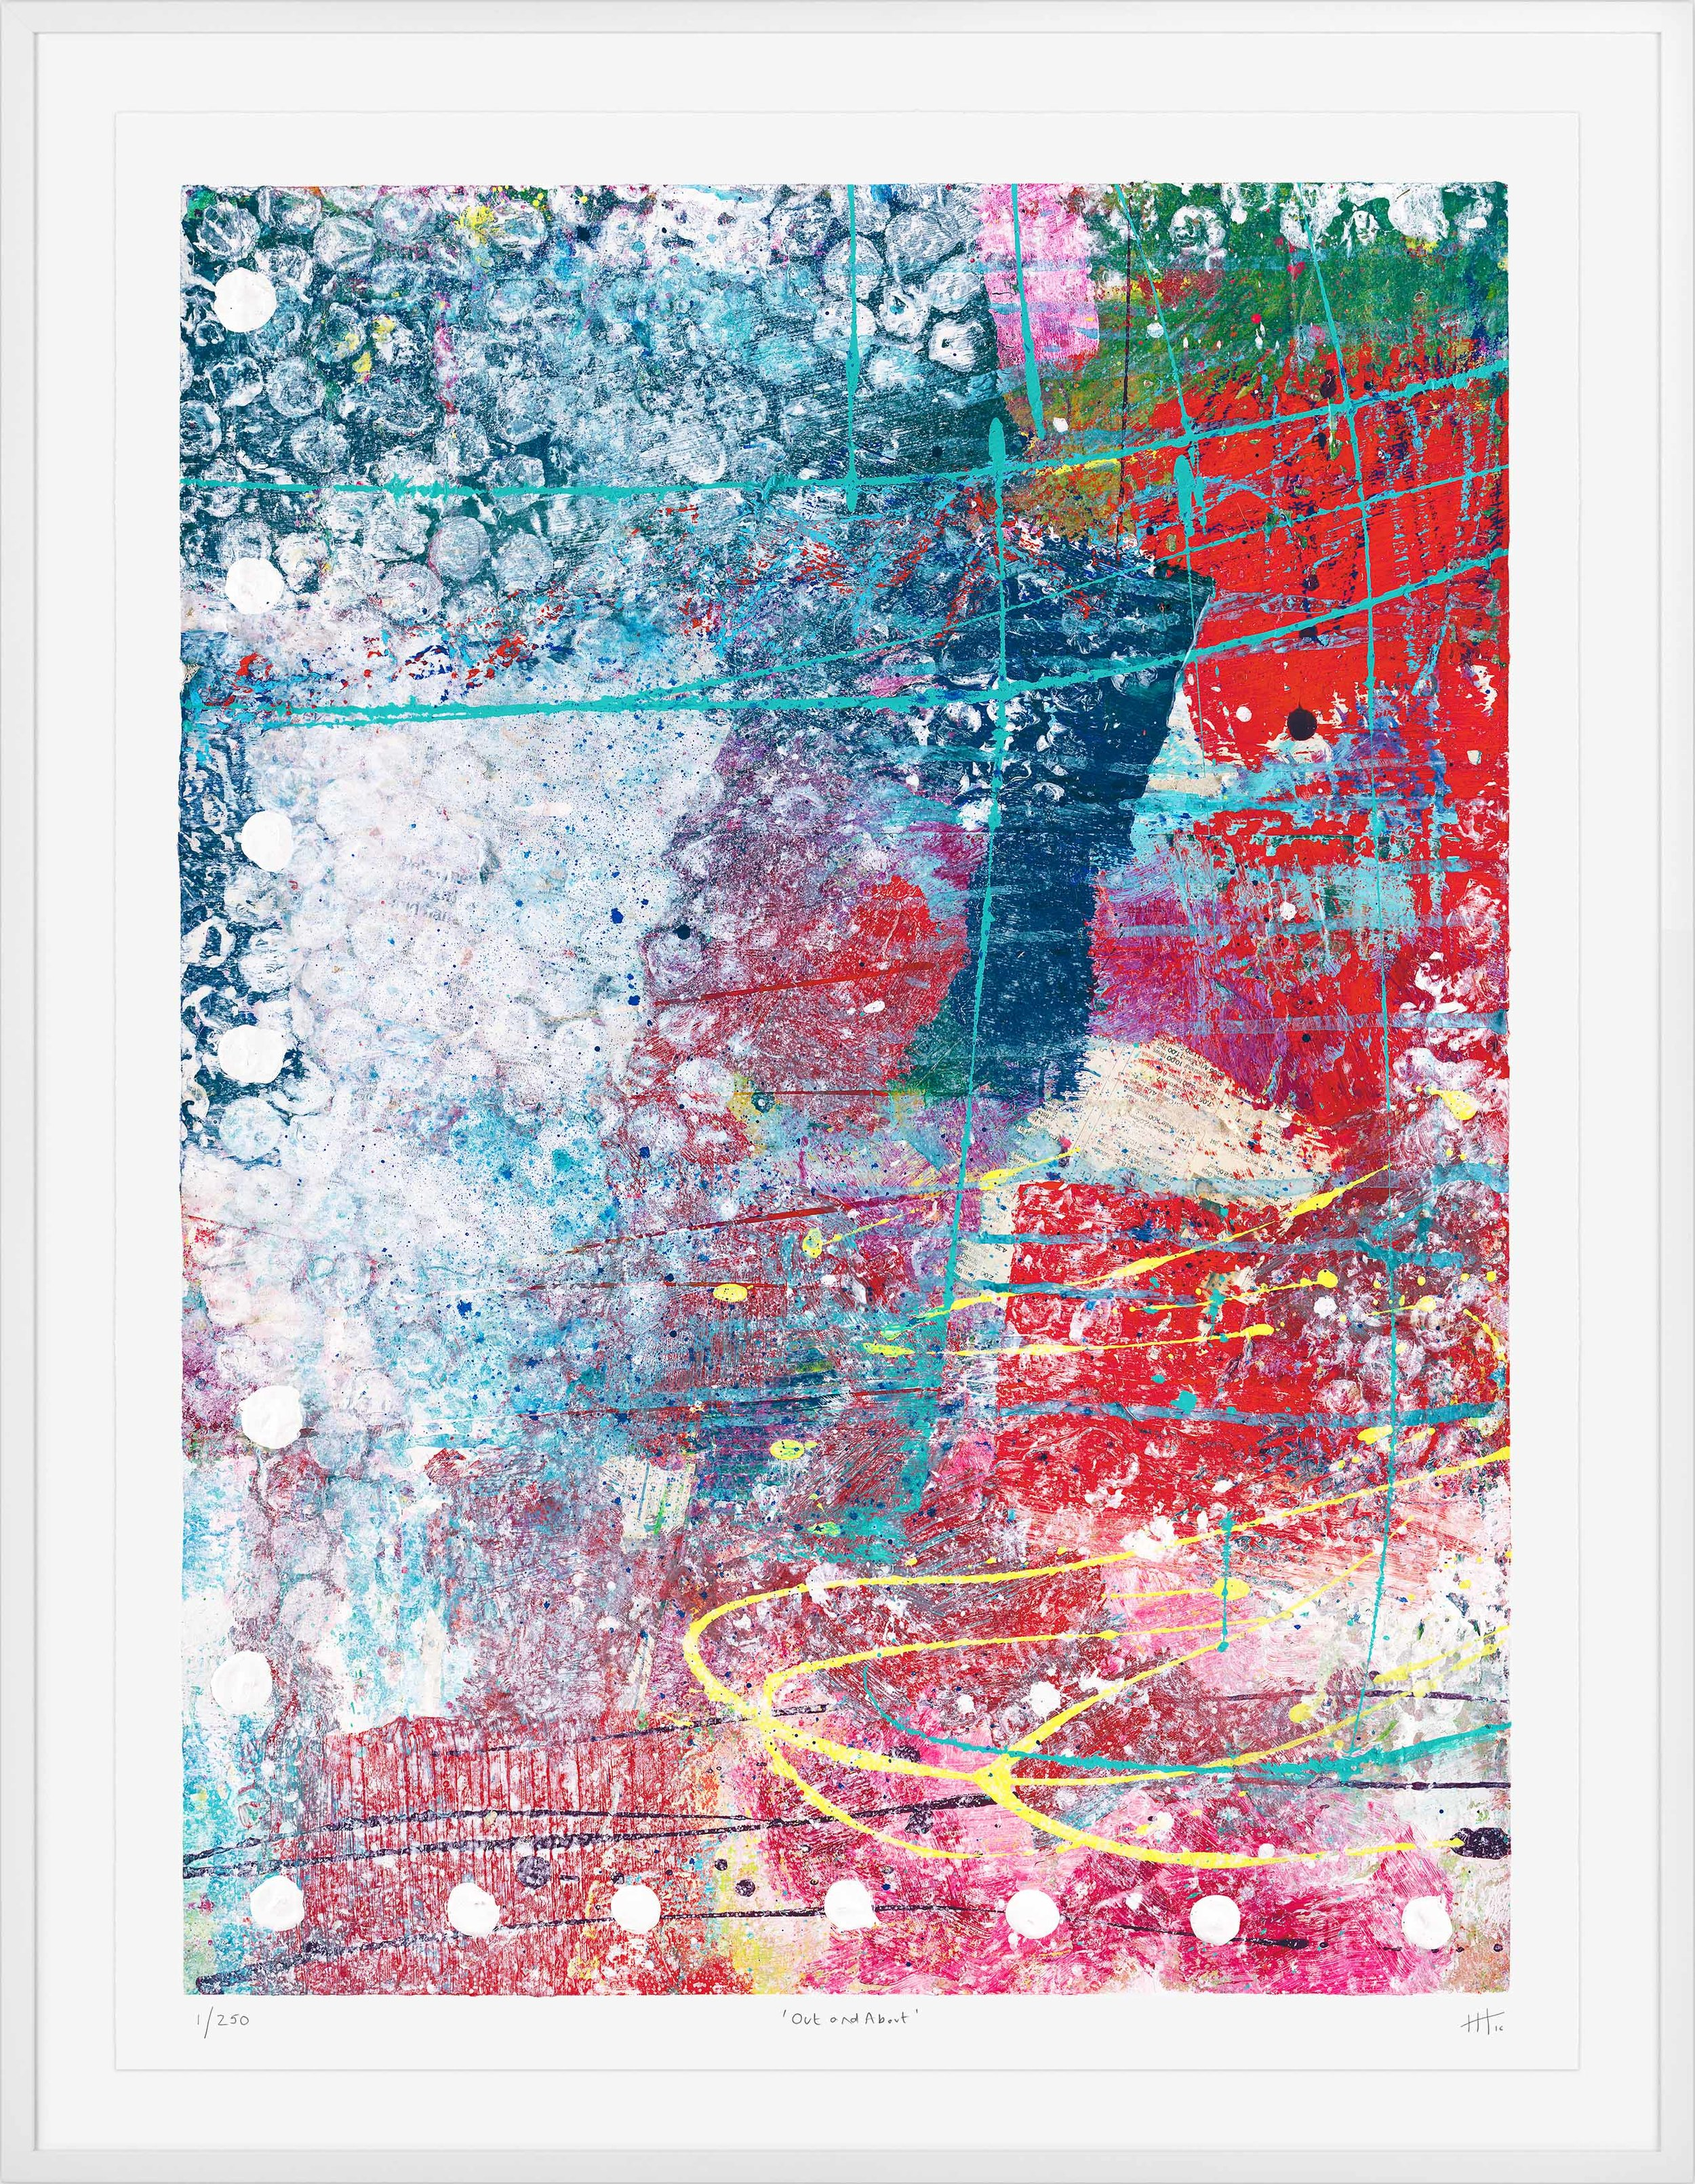 'Out & About' LIMITED EDITION GICLEE PRINT / Edition of 50 Size: 95cm x 70cm (framed)  £475 (includes frame) / £300 unframed  purchase via    contact form